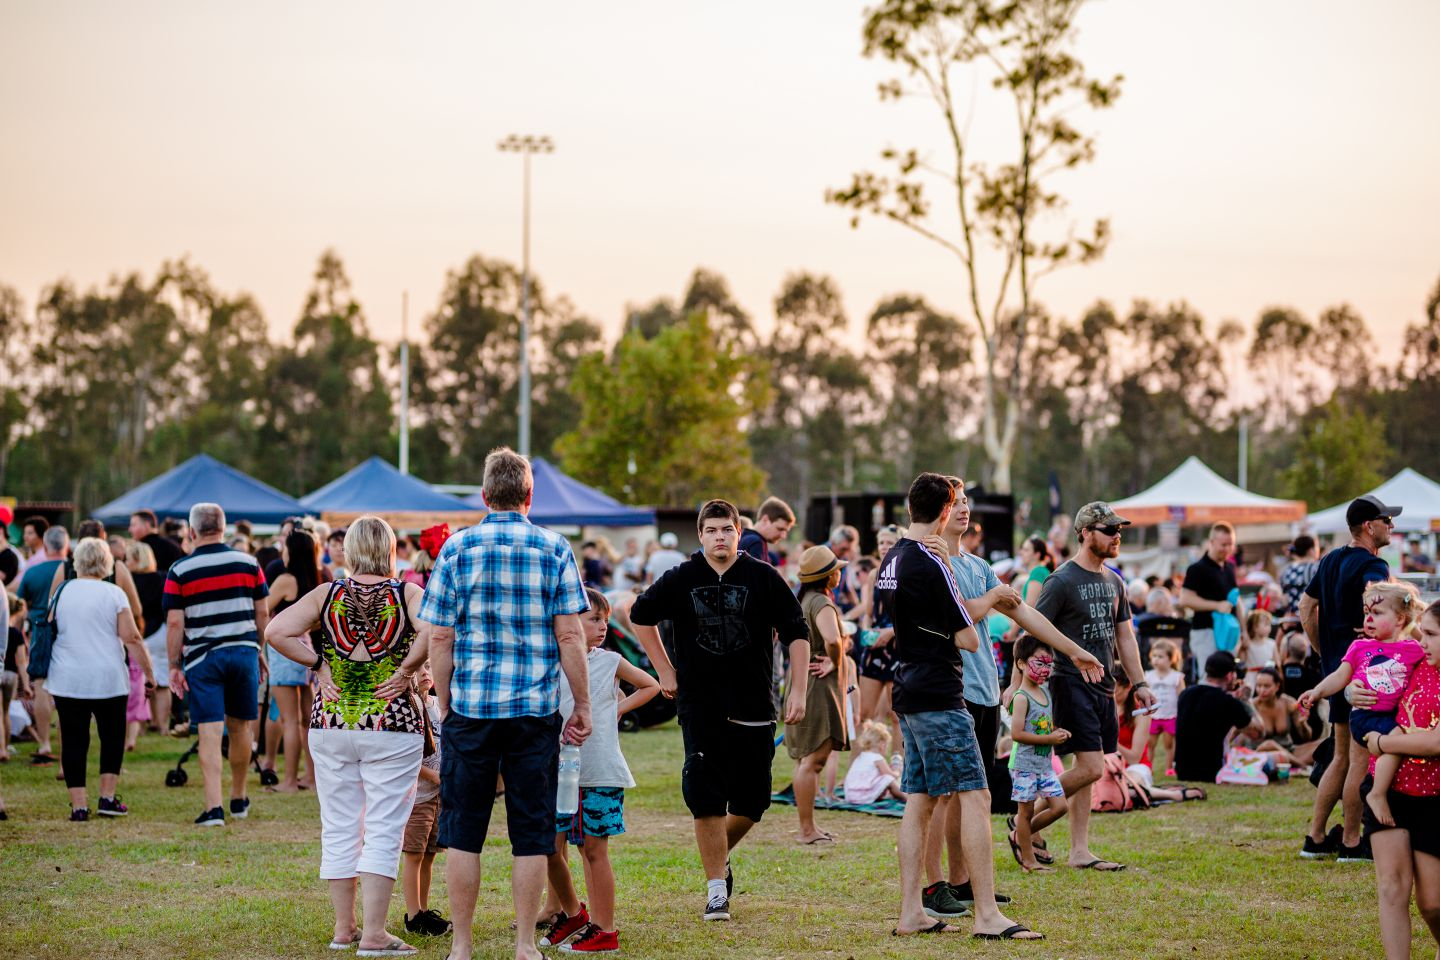 People having fun as they wait for fireworks and entertainment at the Burpengary Christmas Spectacular.